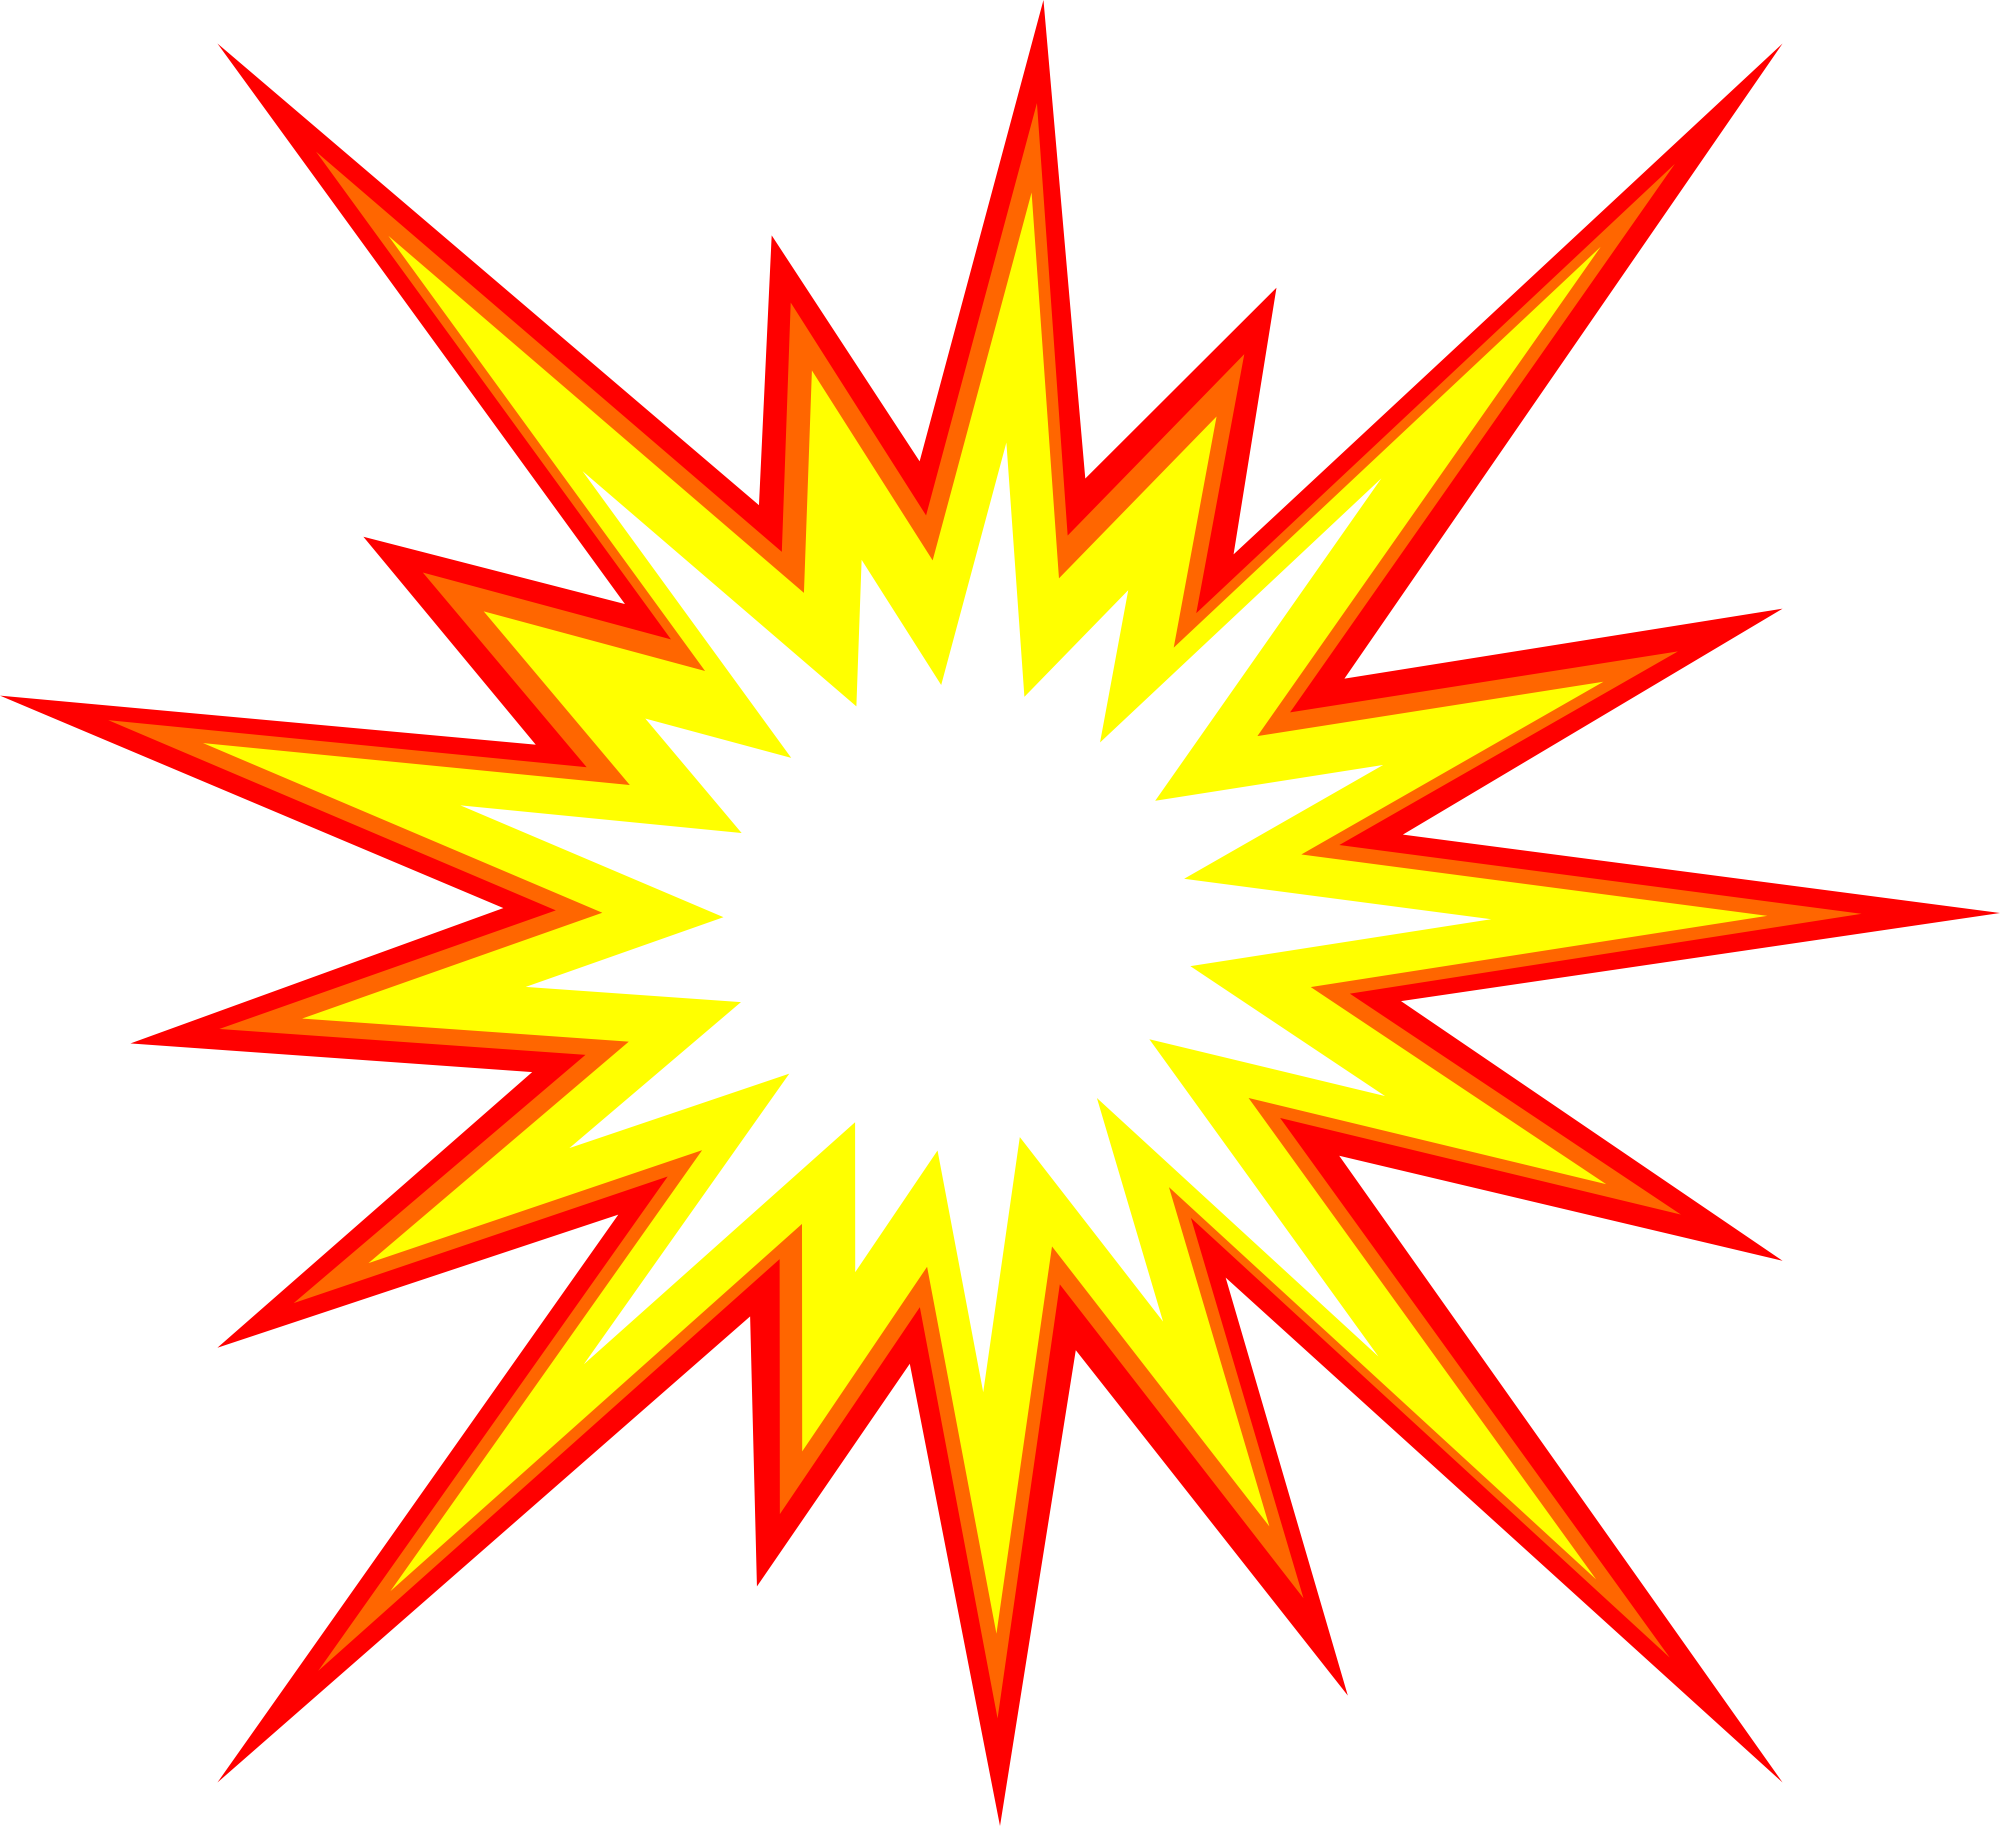 Star Burst Png, png collections at sccpre.cat.